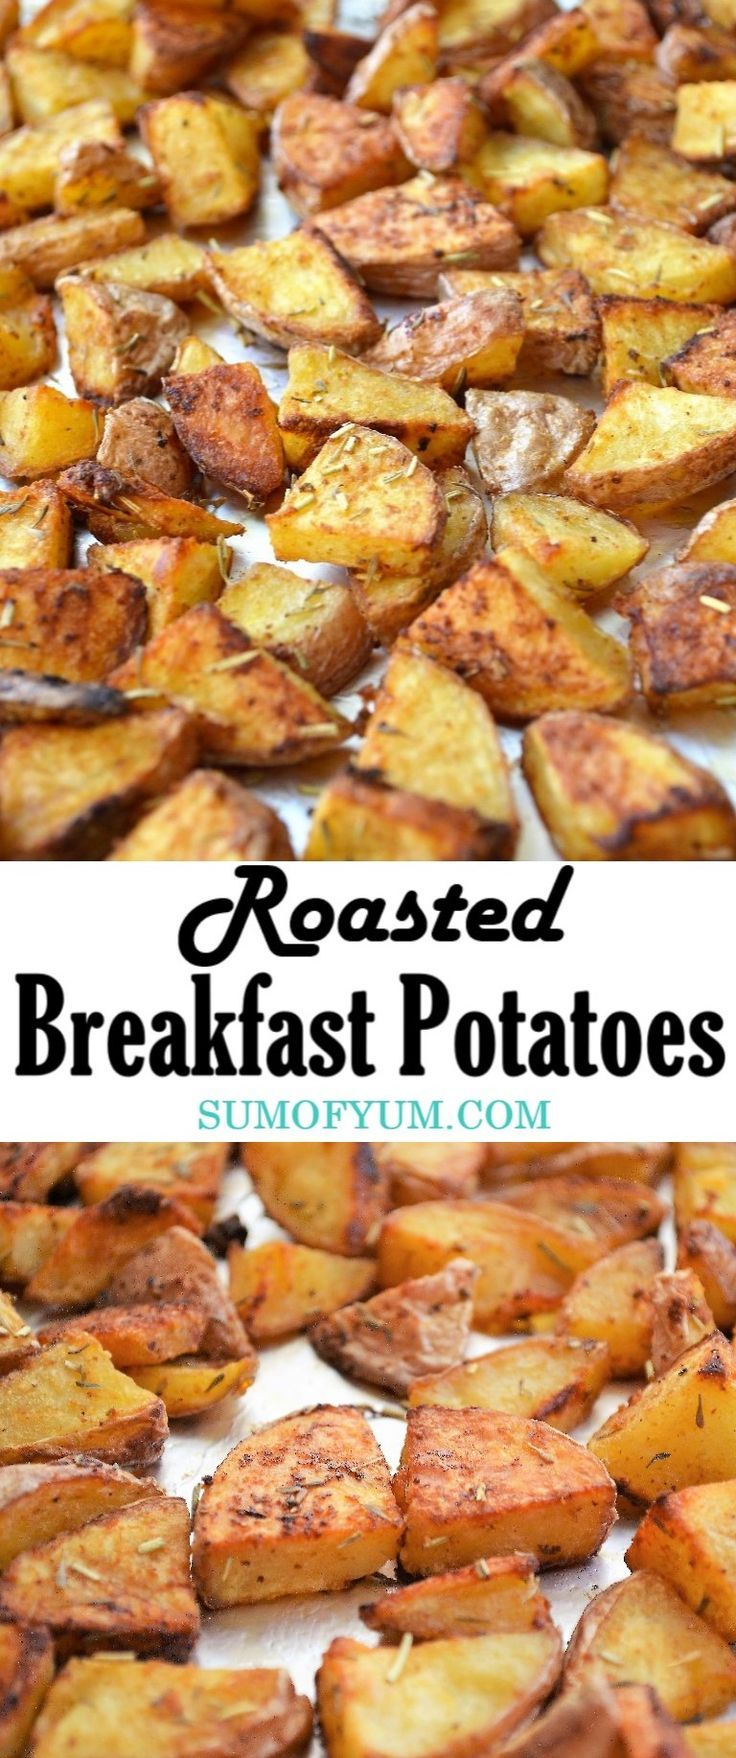 Oven roasted breakfast potatoes, or ��home fries��, are so easy to make and they are healthier and less greasy than making them in the skillet. These roasted red potatoes are perfectly seasoned, crispy and full of flavor! | Breakfast | Brunch | Side Dish |